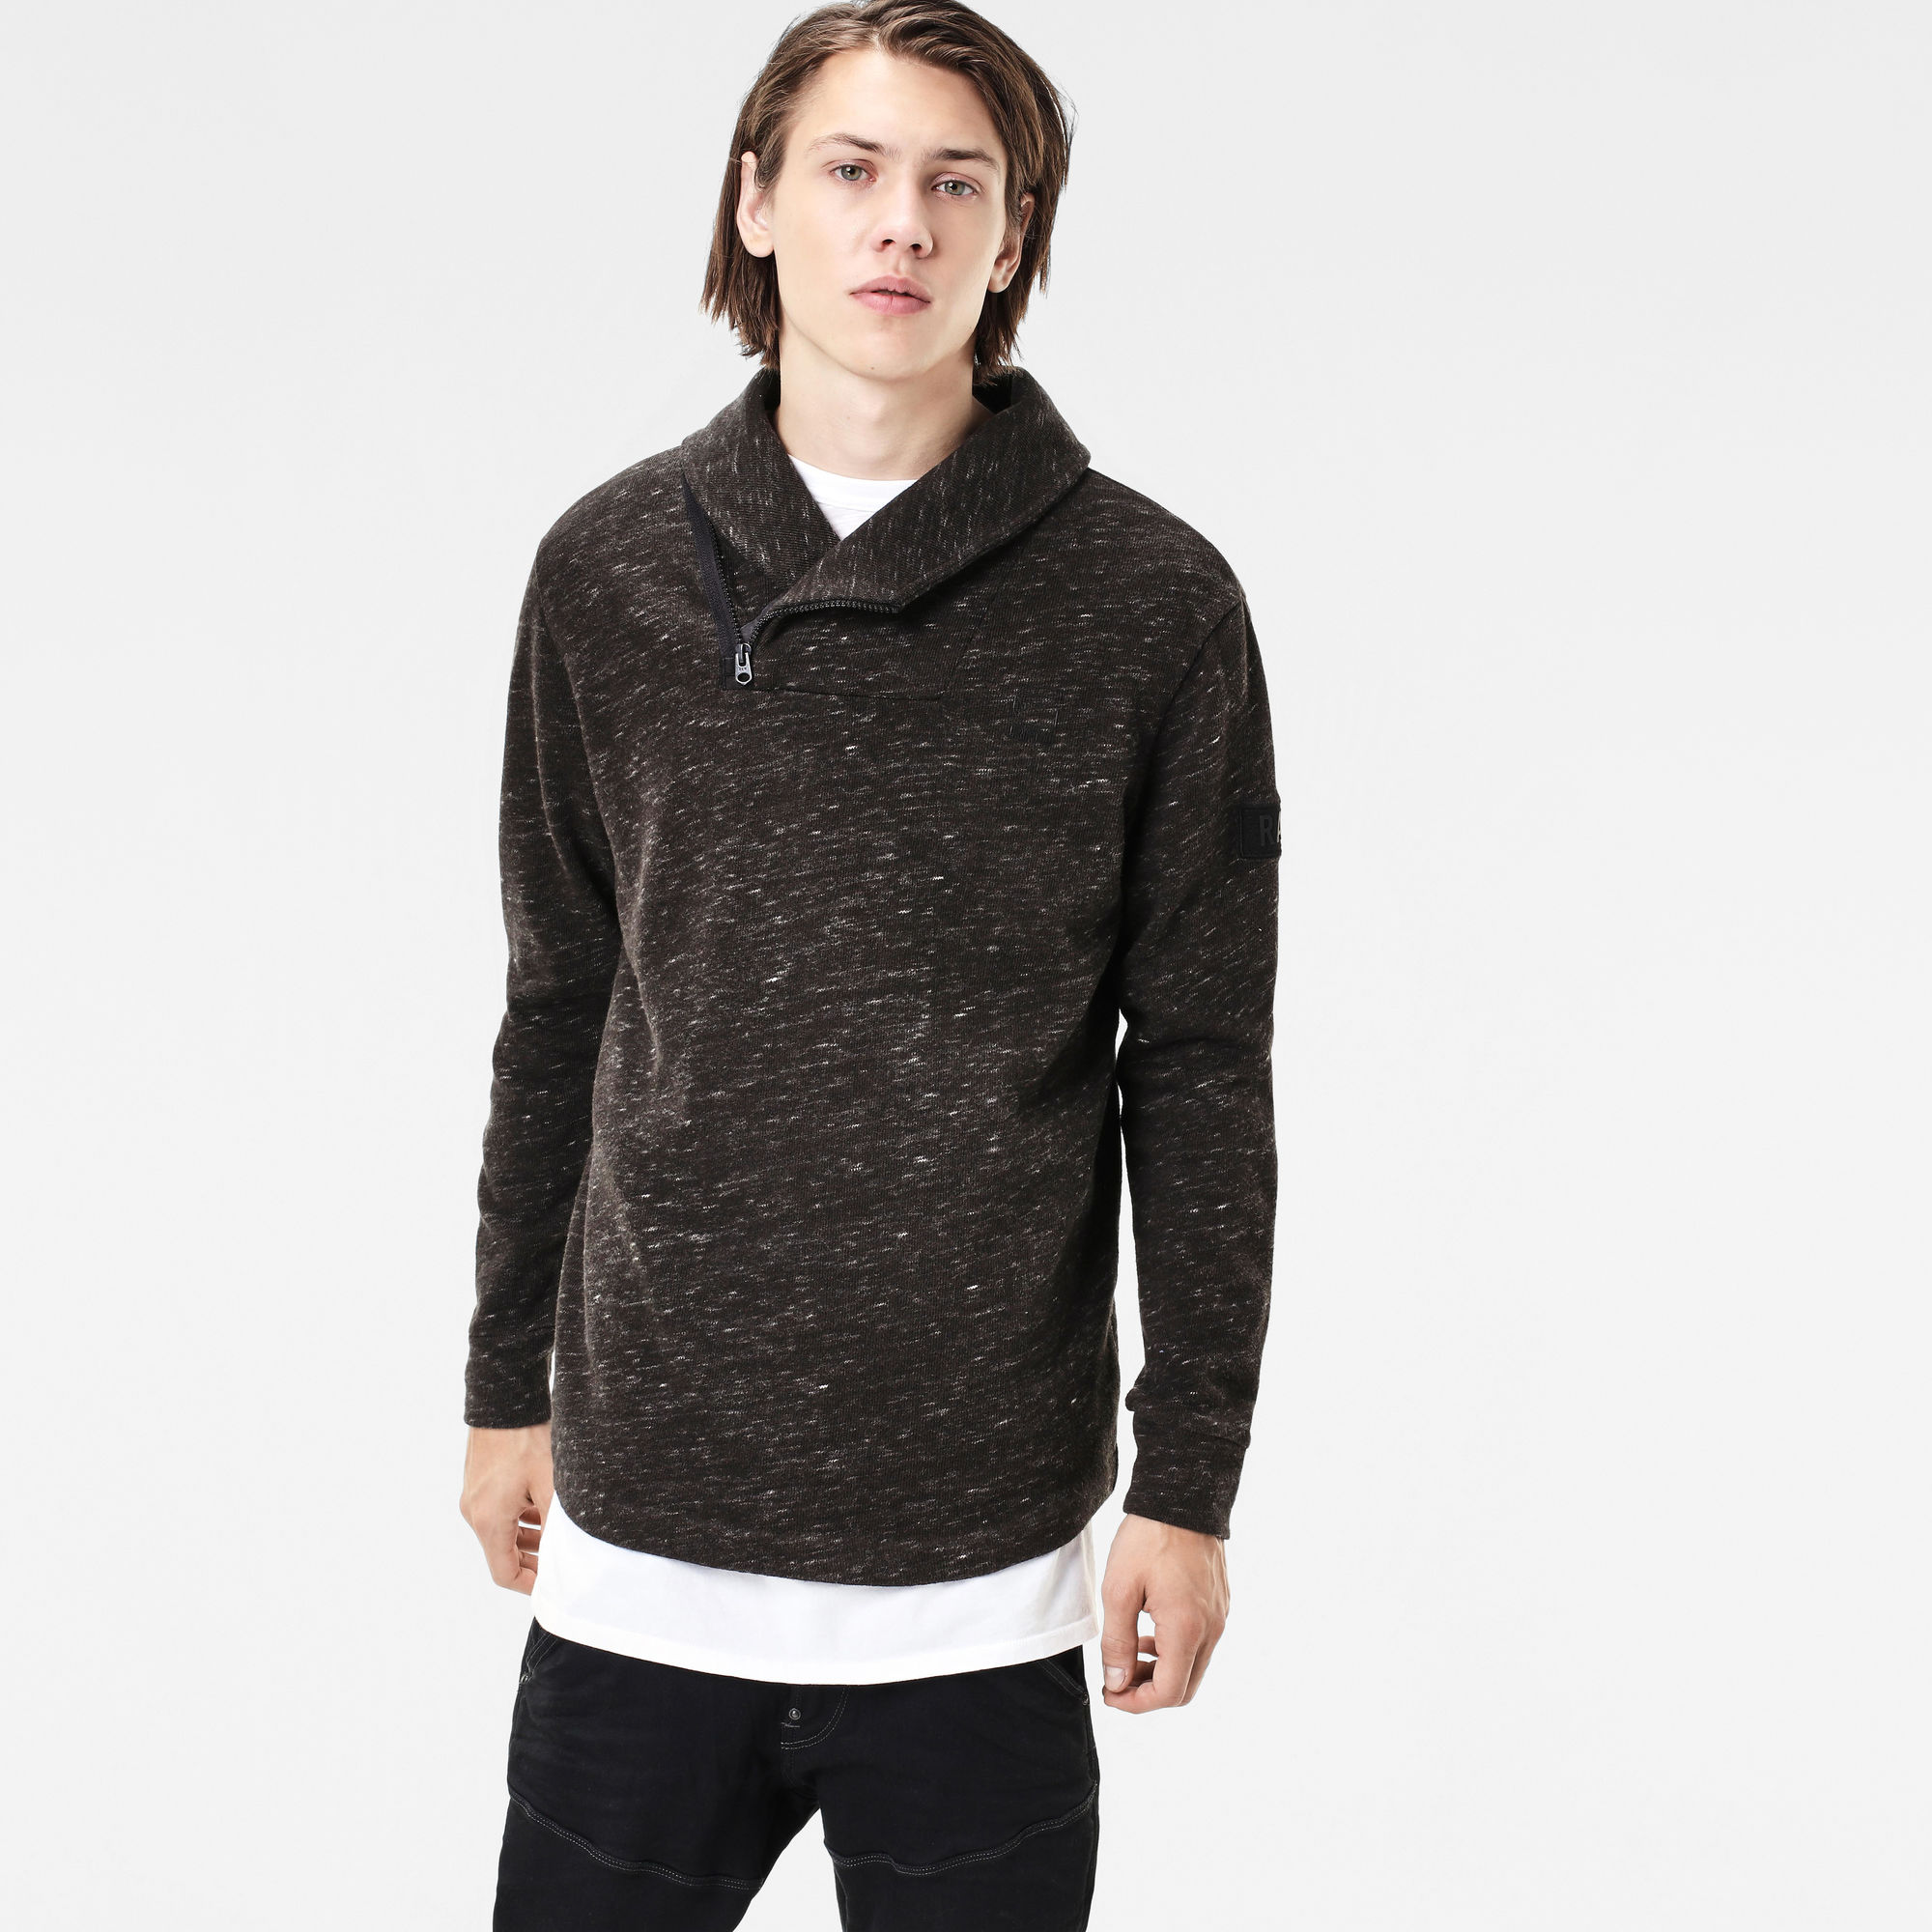 Dawch Collar Sweater